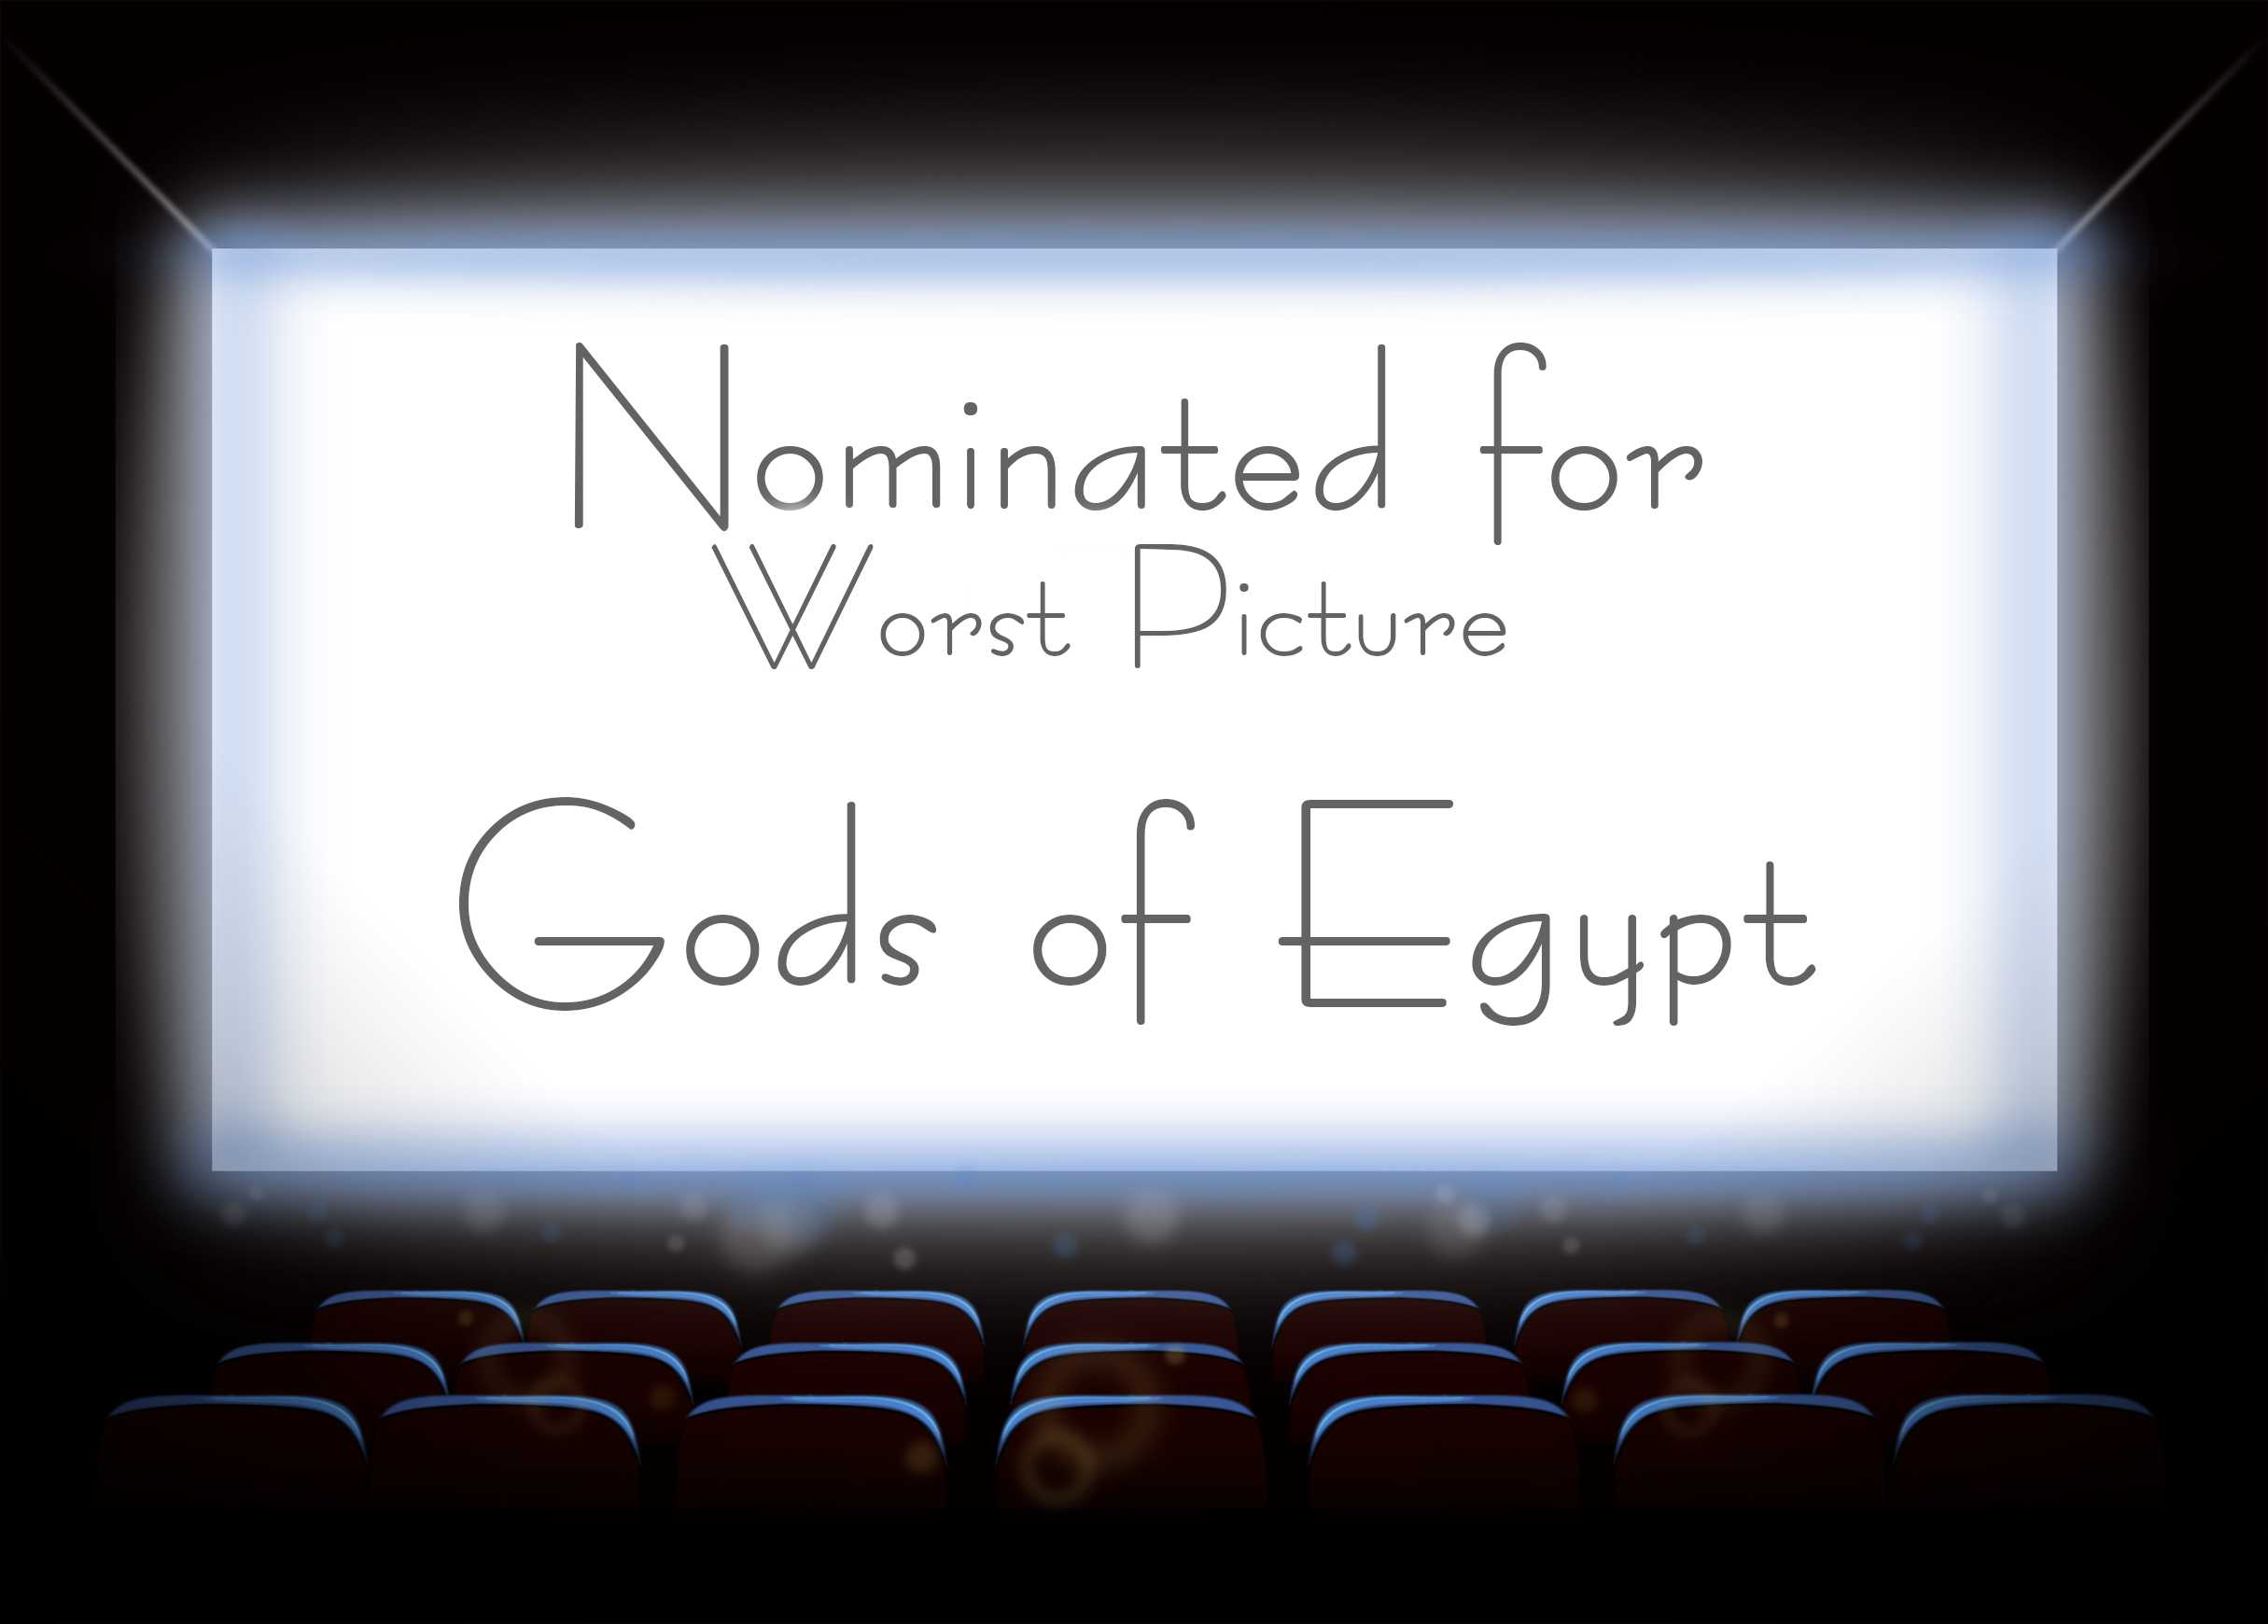 Gods of Egypt hit theaters February 2016. Check out the trailer on Youtube.